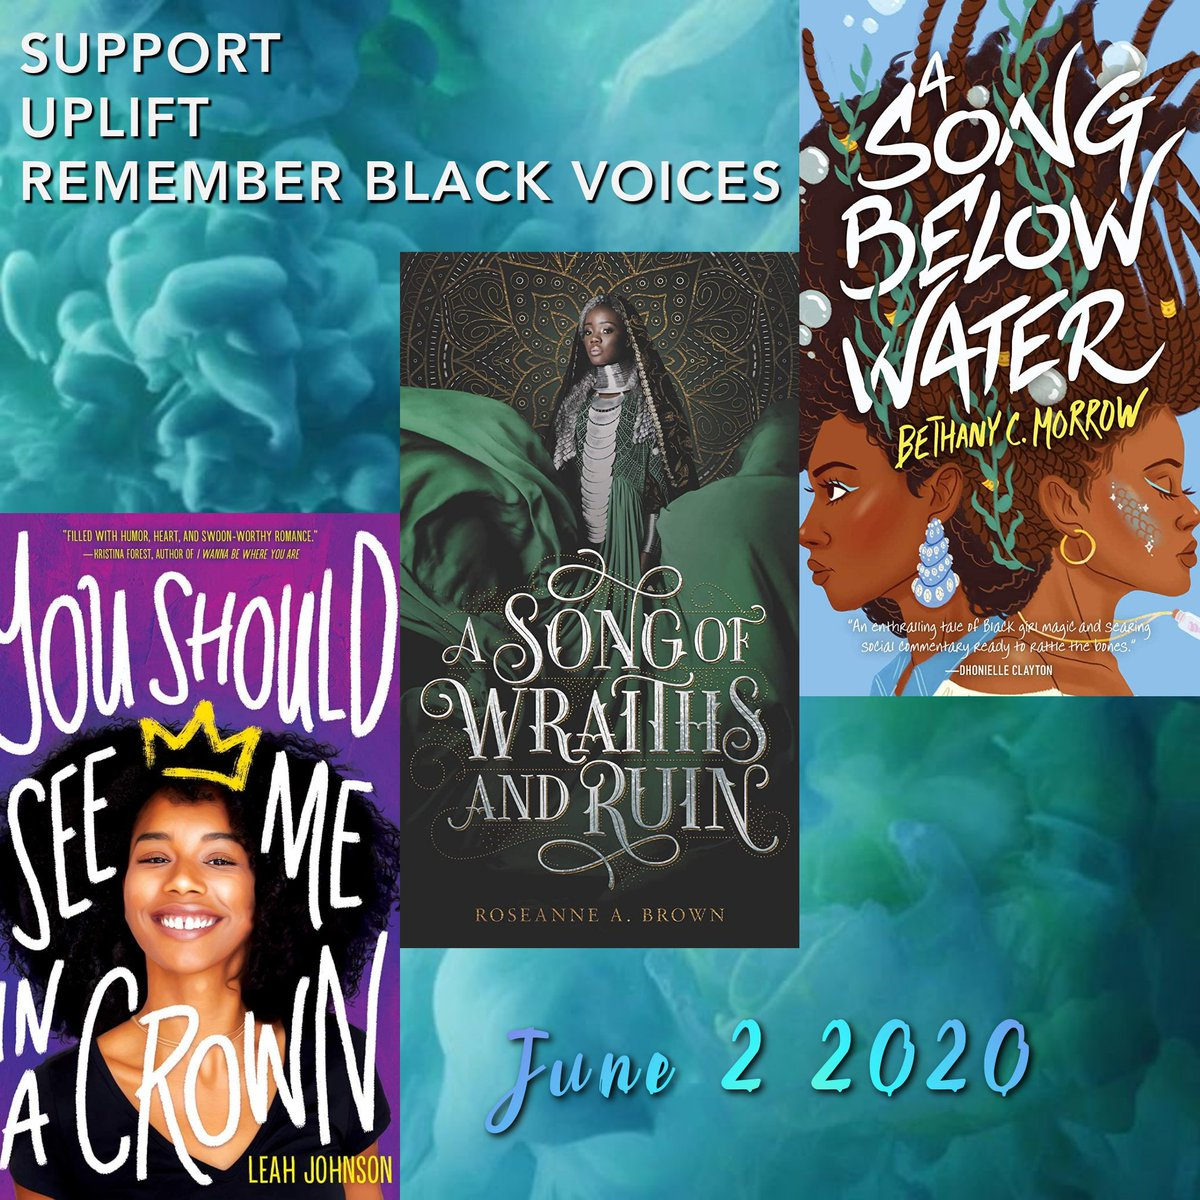 HAPPY RELEASE DAY to these Black authors! @byleahjohnson @rosiesrambles @BCMorrow